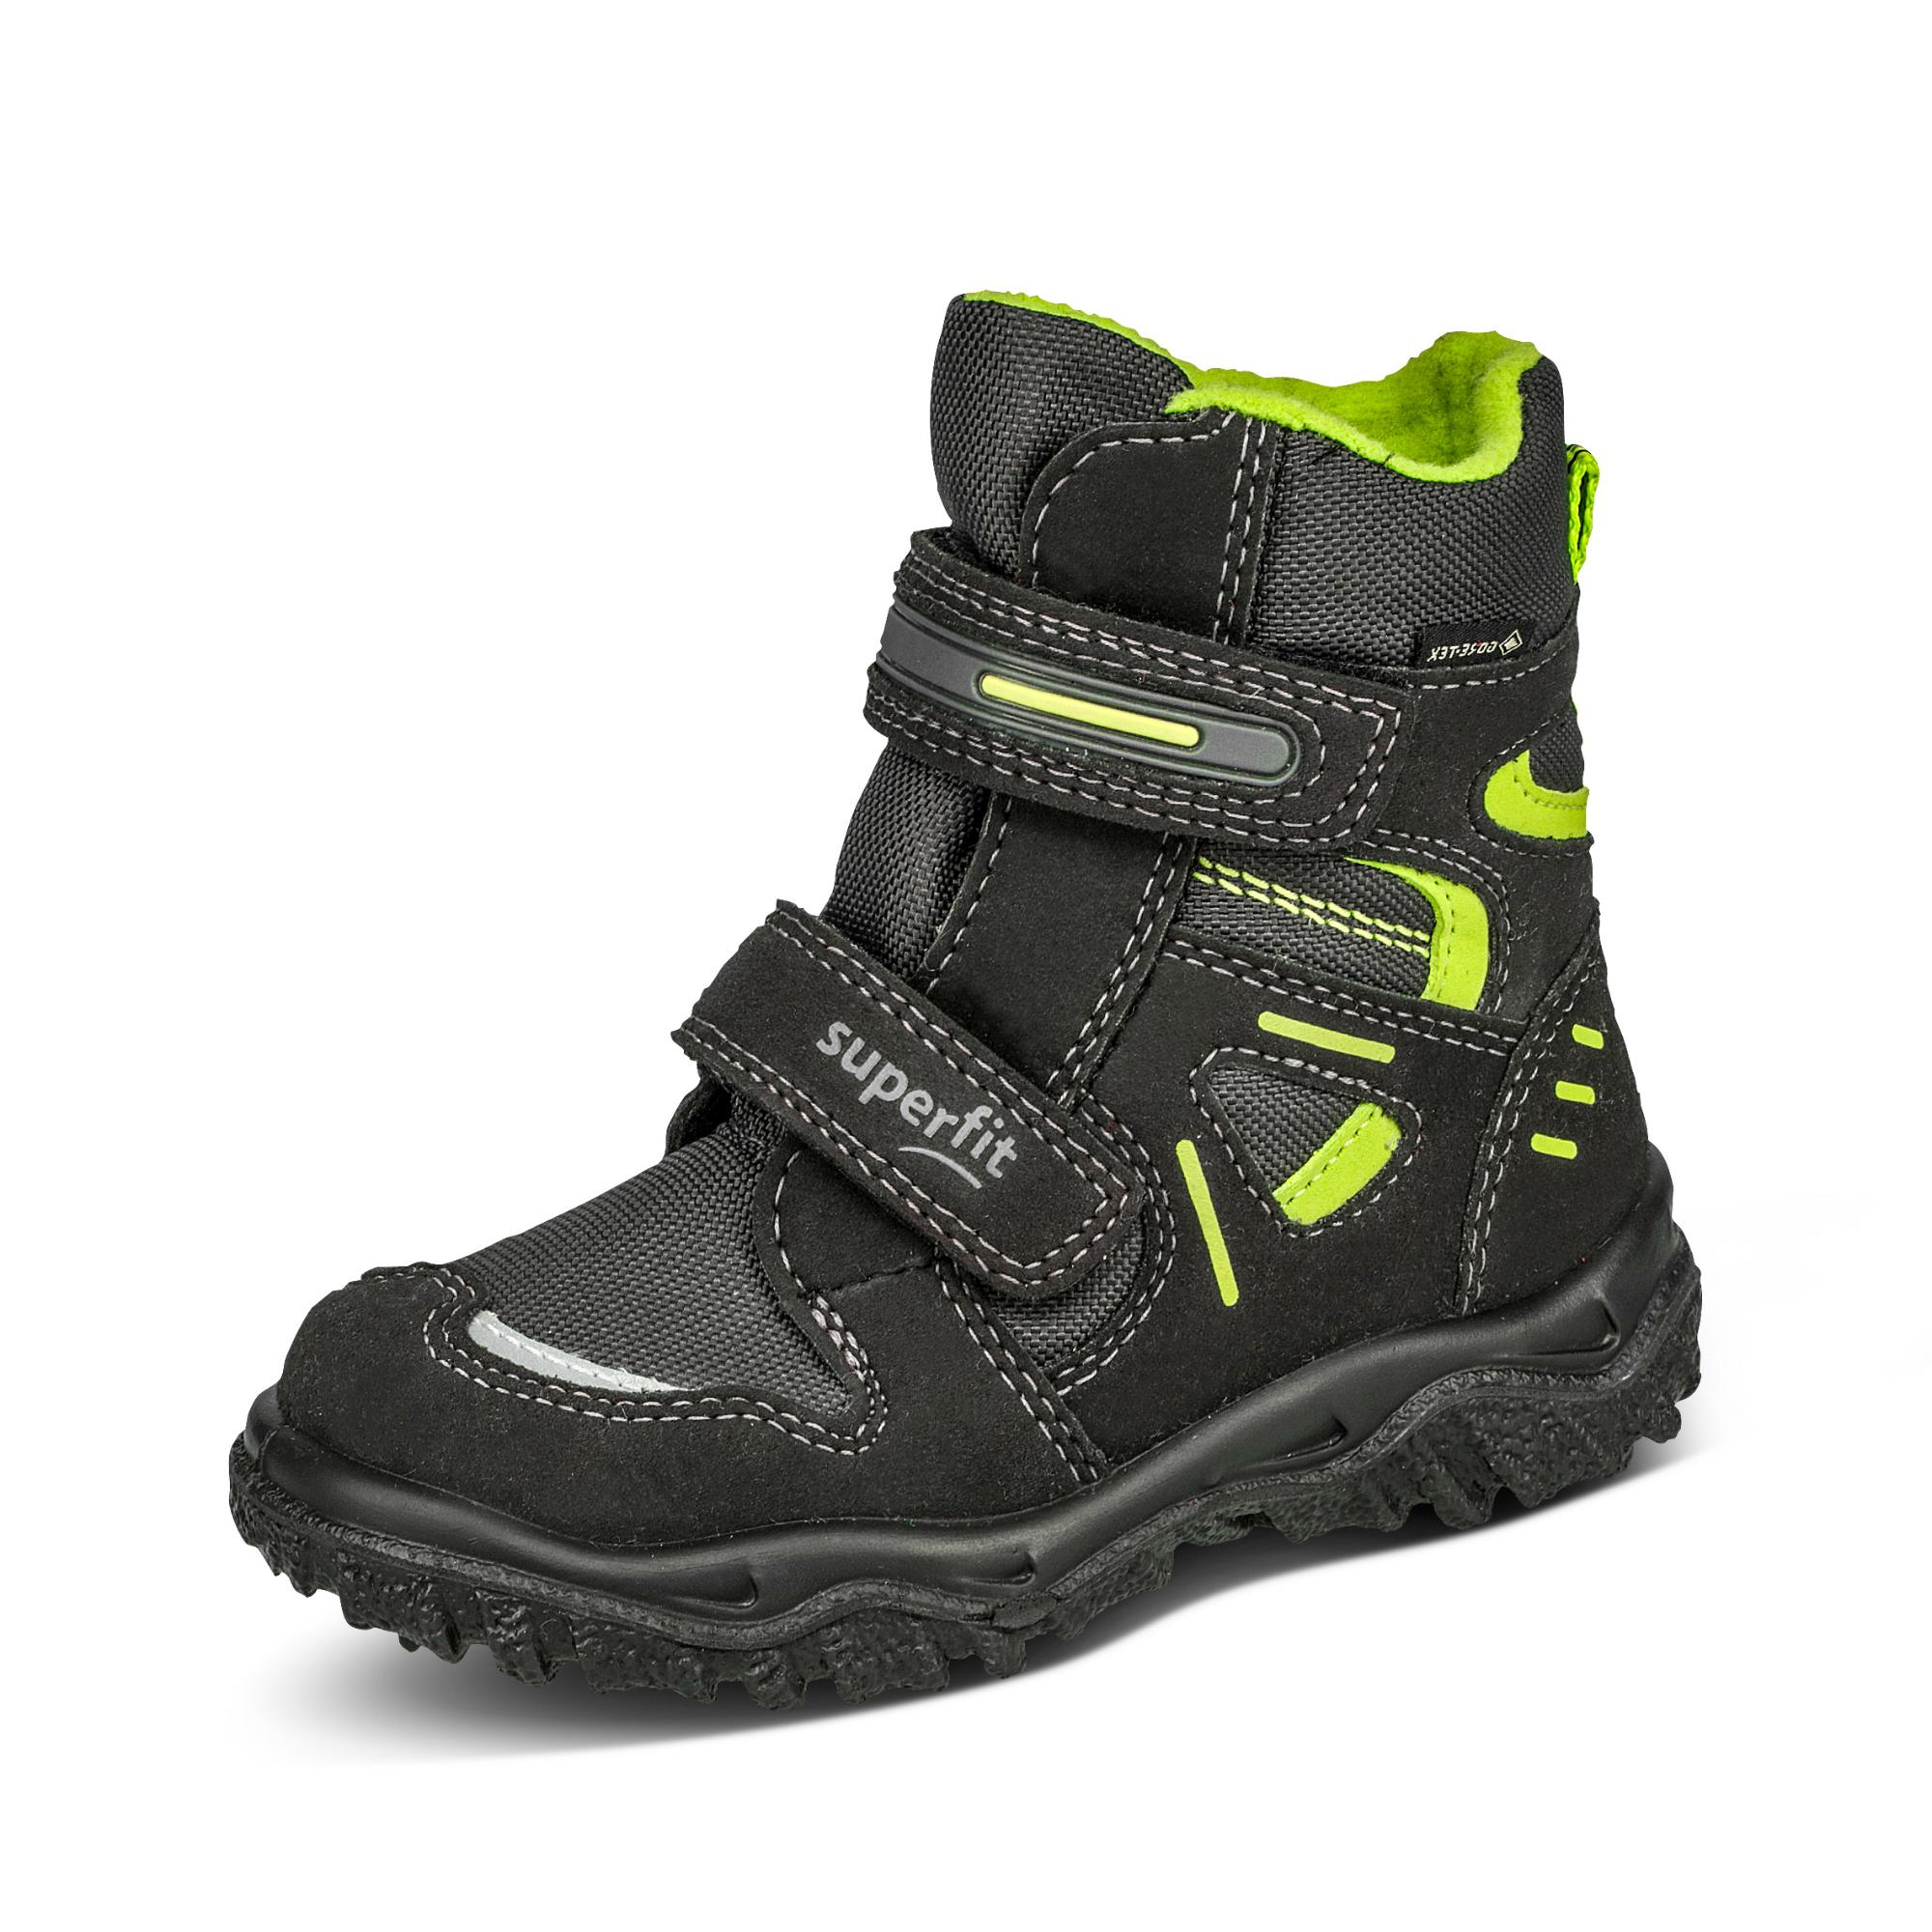 low priced 6248f 74c5e Superfit GORE-TEX® Winterstiefel - schwarz/neongrün um 7 ...